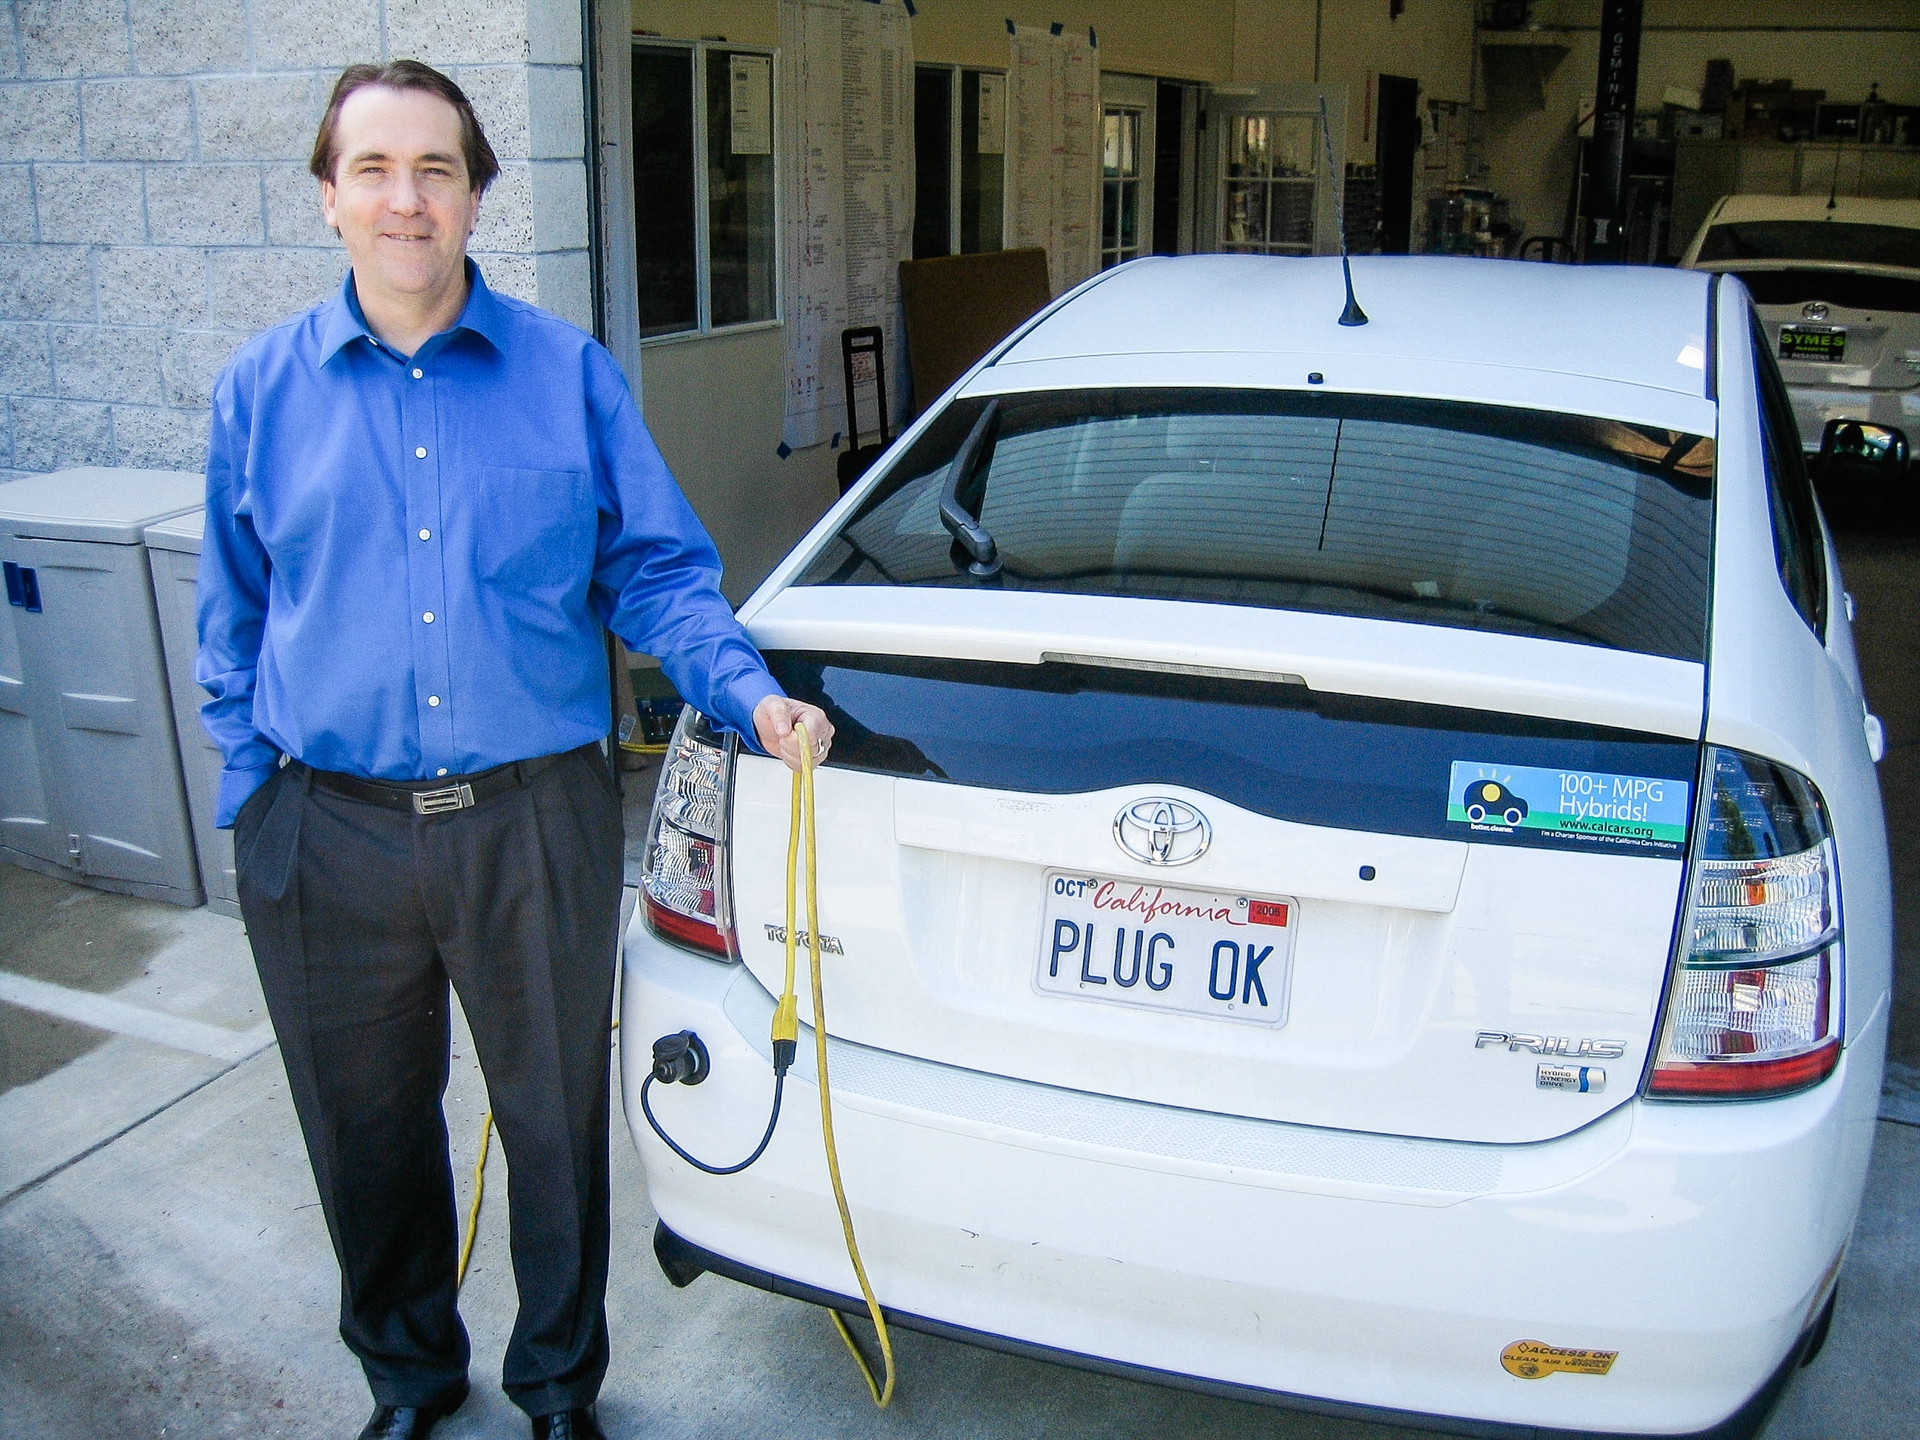 Dean Taylor shows off an early plug-in hybrid electric vehicle.